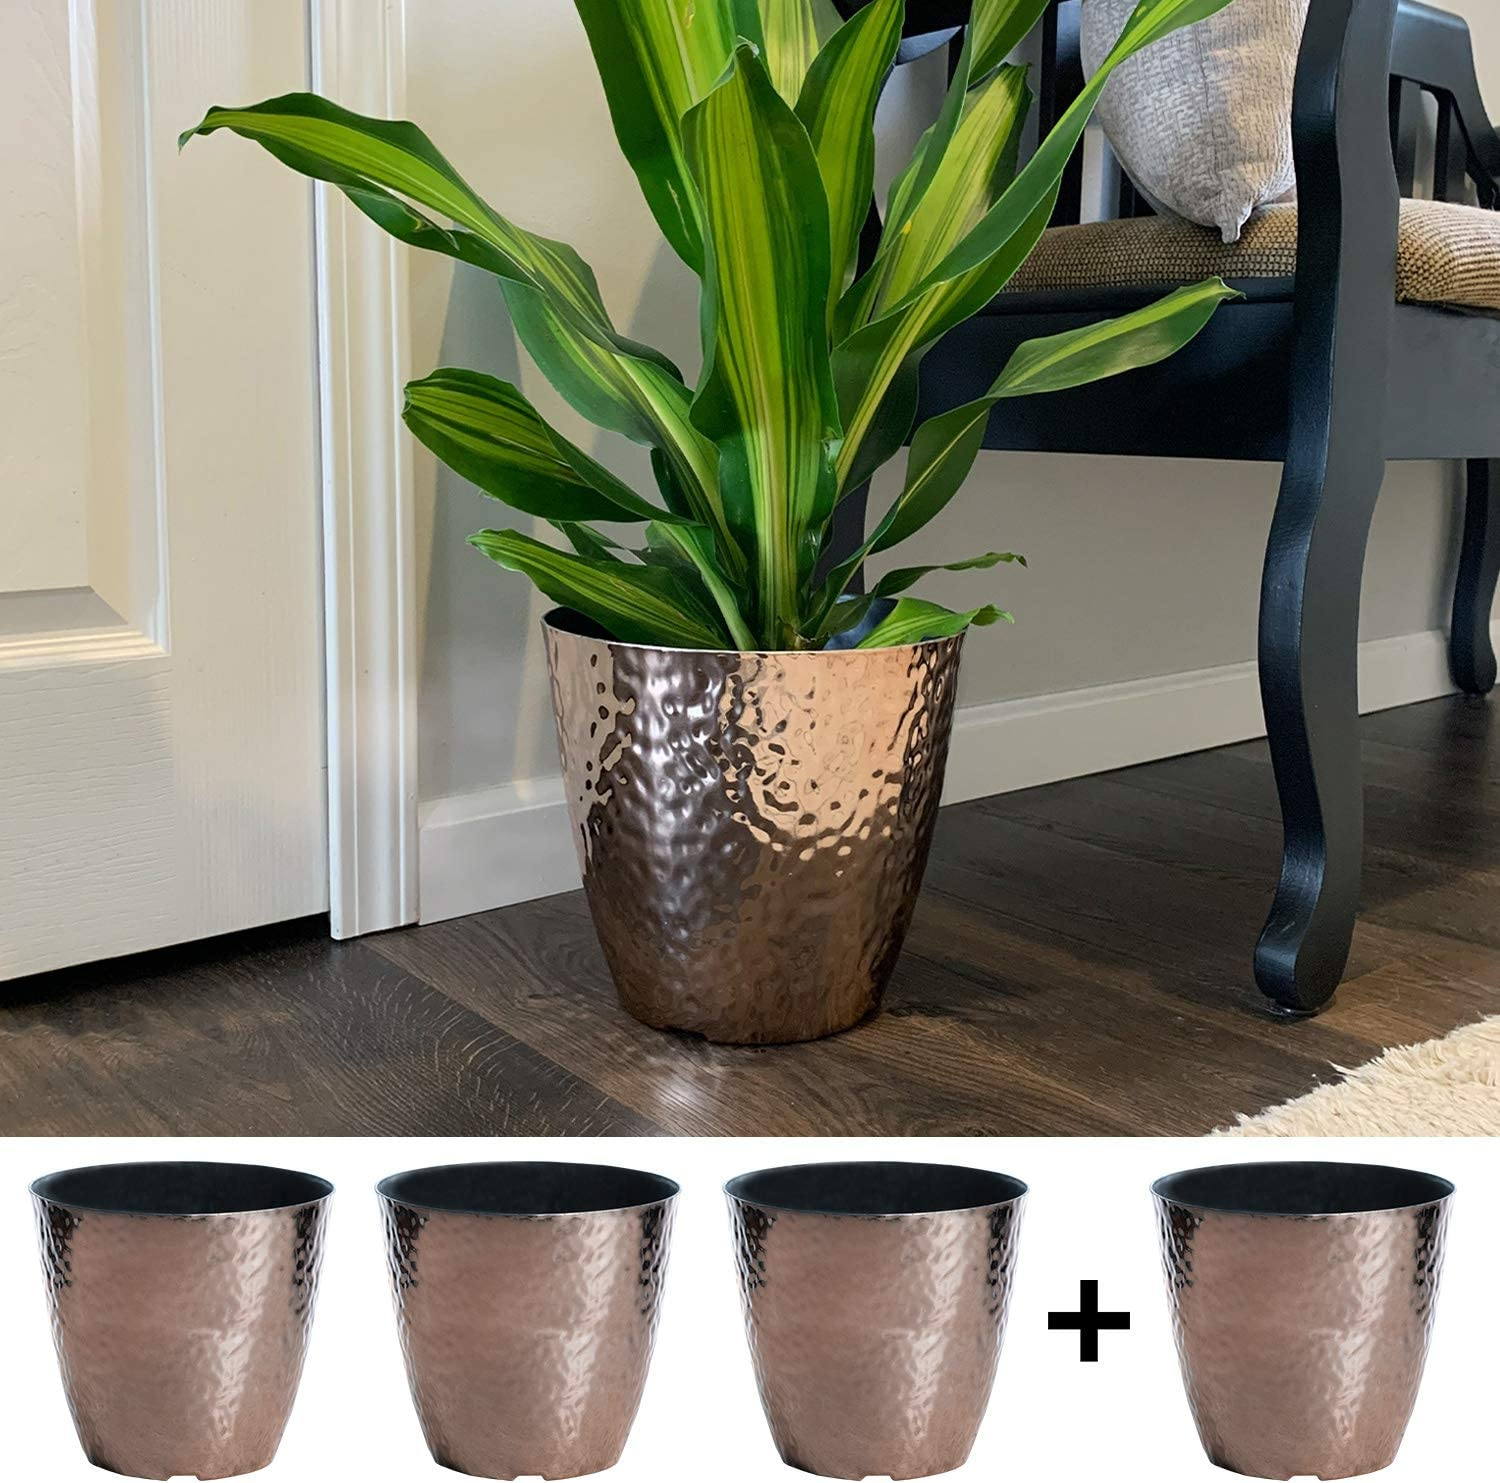 4-Pack 10-in. Round Metallic Hammered Plastic Flower Pot Garden Potted Planter for Indoors or Outdoors, Copper